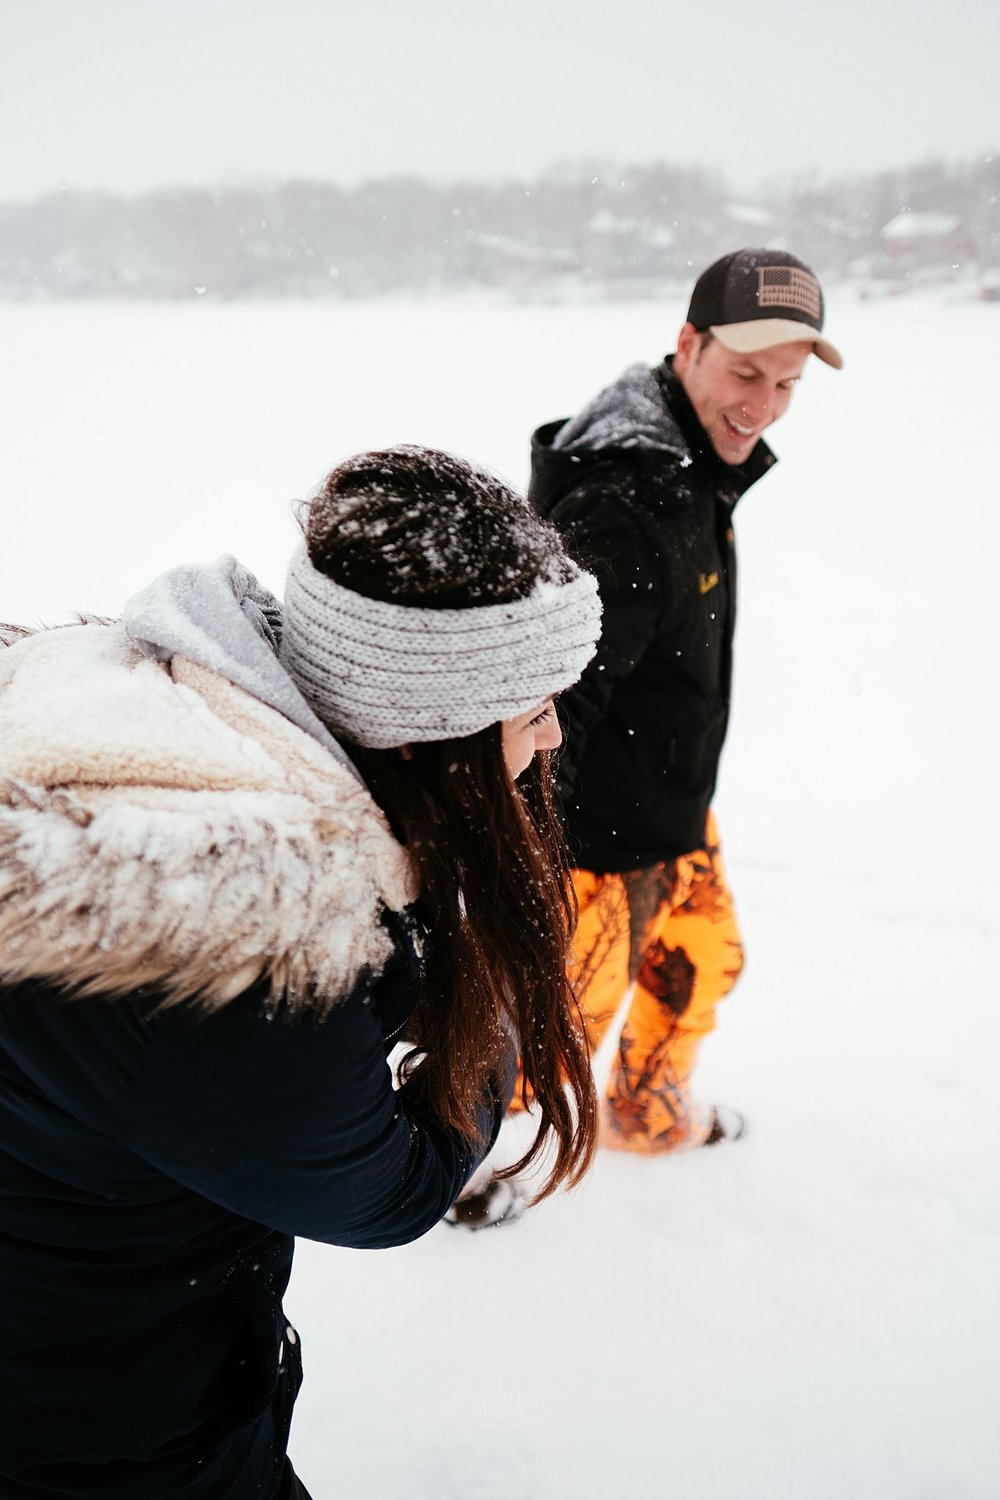 Copper Key Visuals Wisconsin Ice Fishing Engagement Session-18.jpg